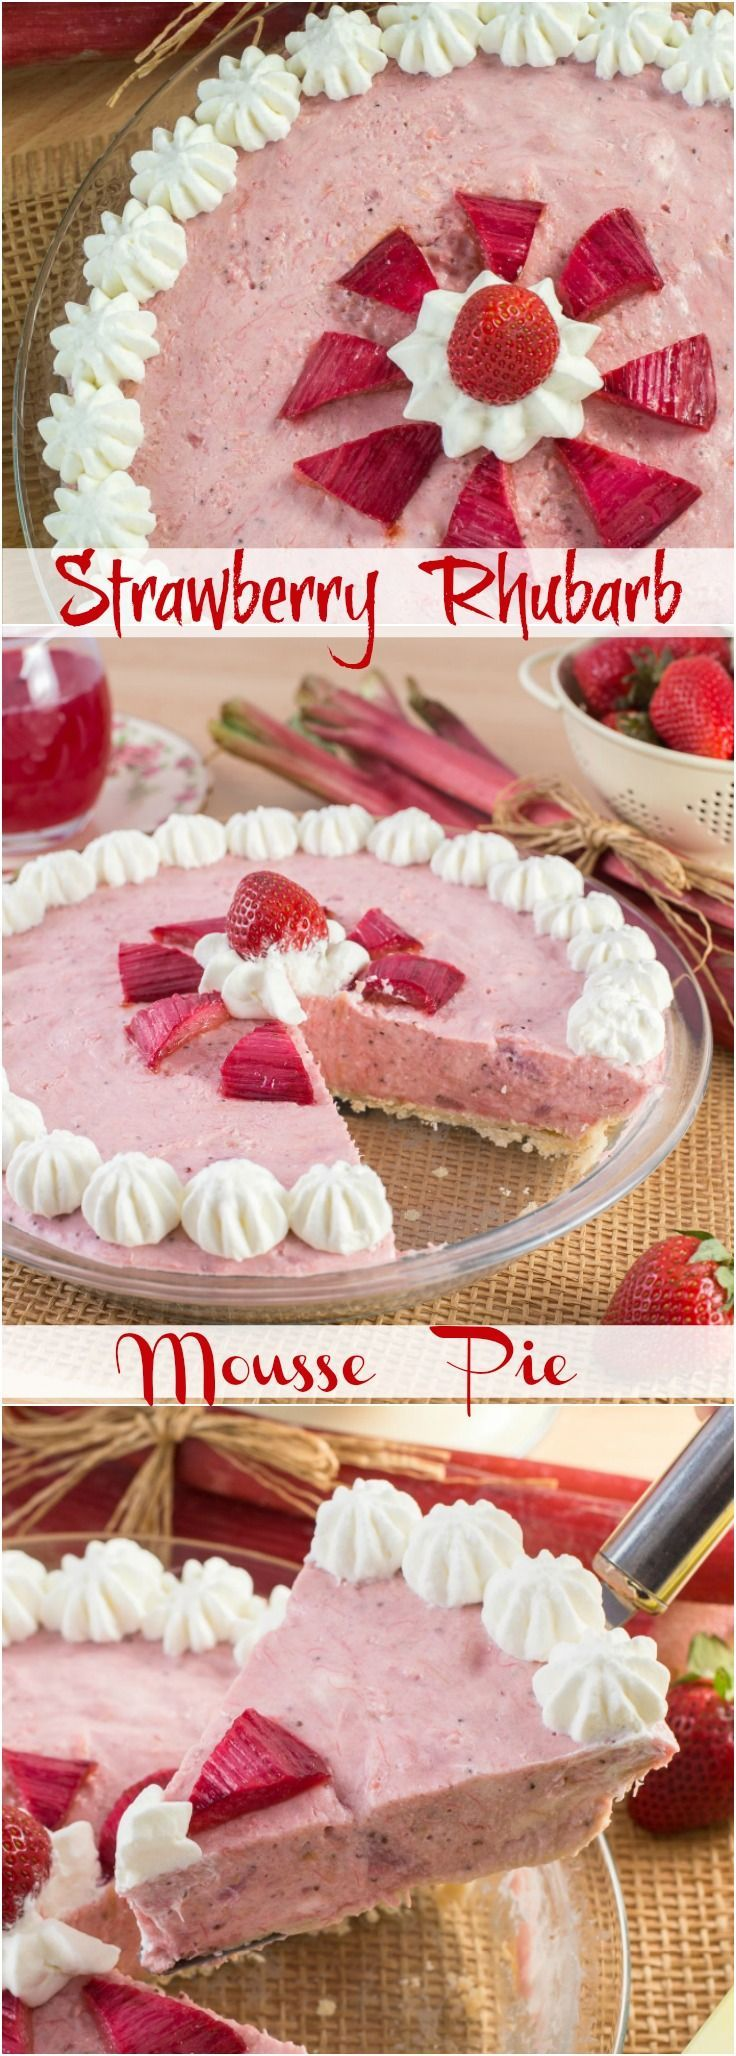 Strawberry Rhubarb Mousse Pie combines the sensational flavours of tart Rhubarb and sweet strawberries into a light and creamy mousse pie.